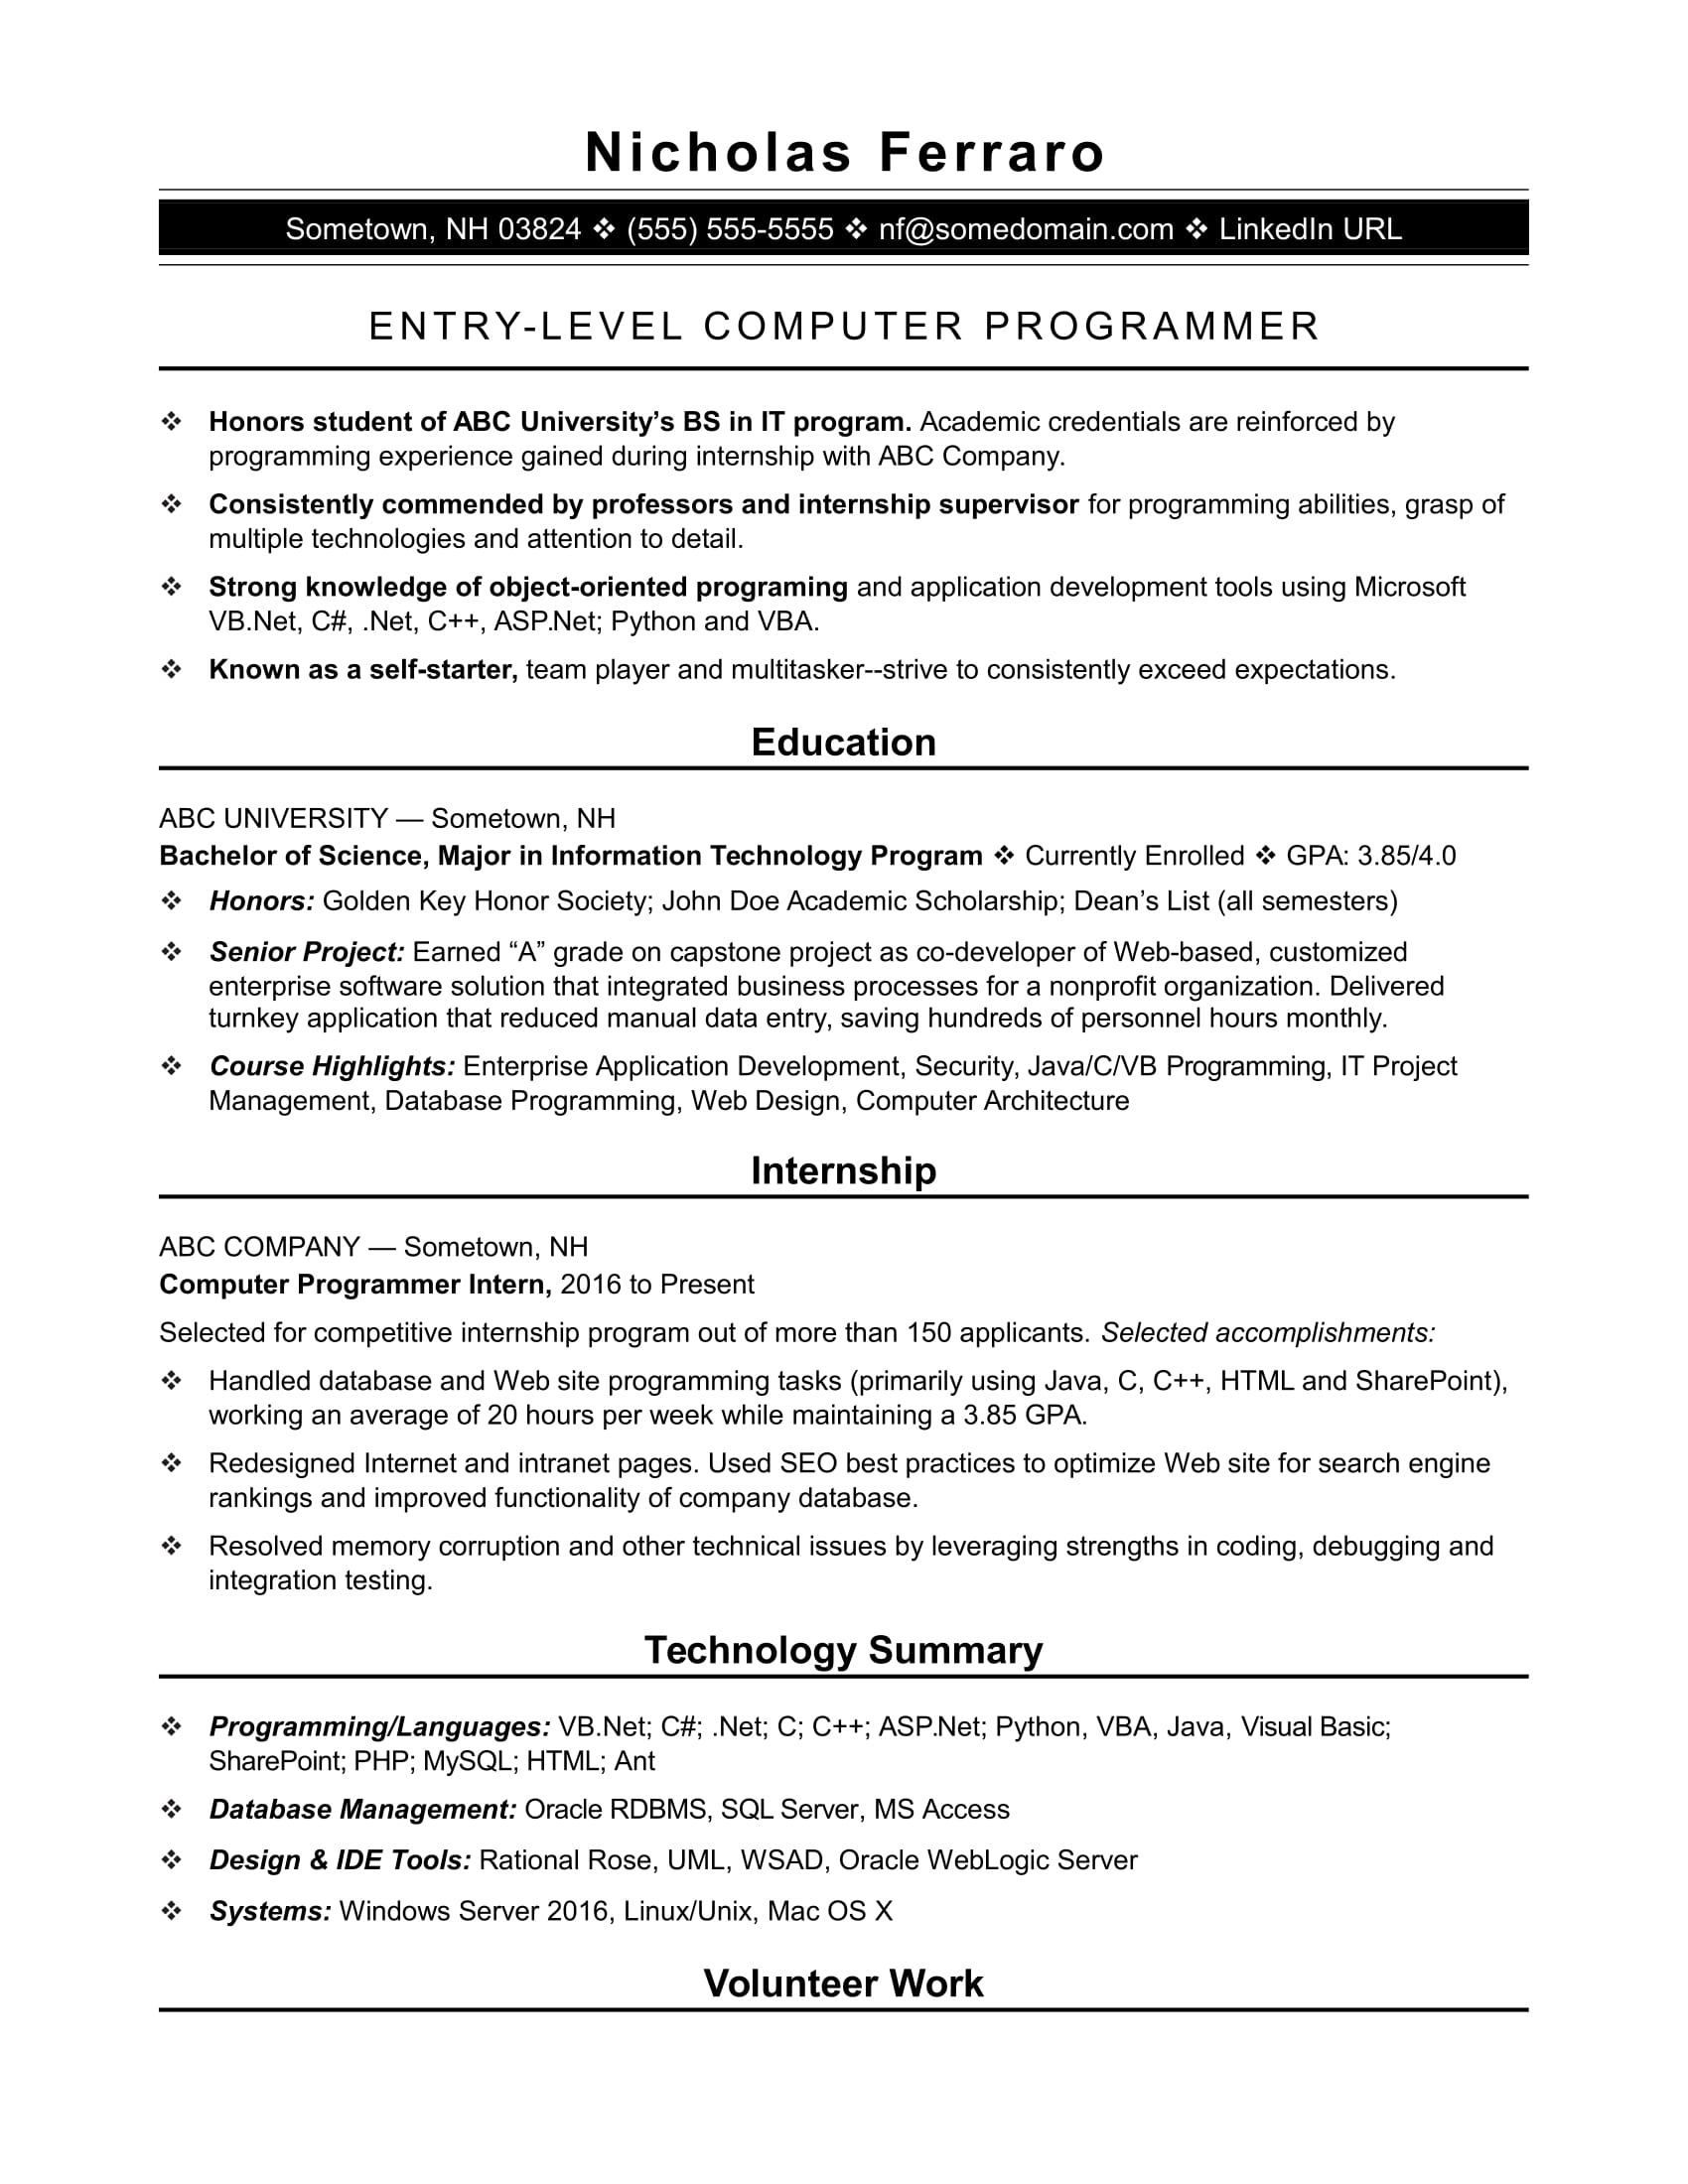 Sample Resume For An Entry Level Computer Programmer  Resume For Computer Science